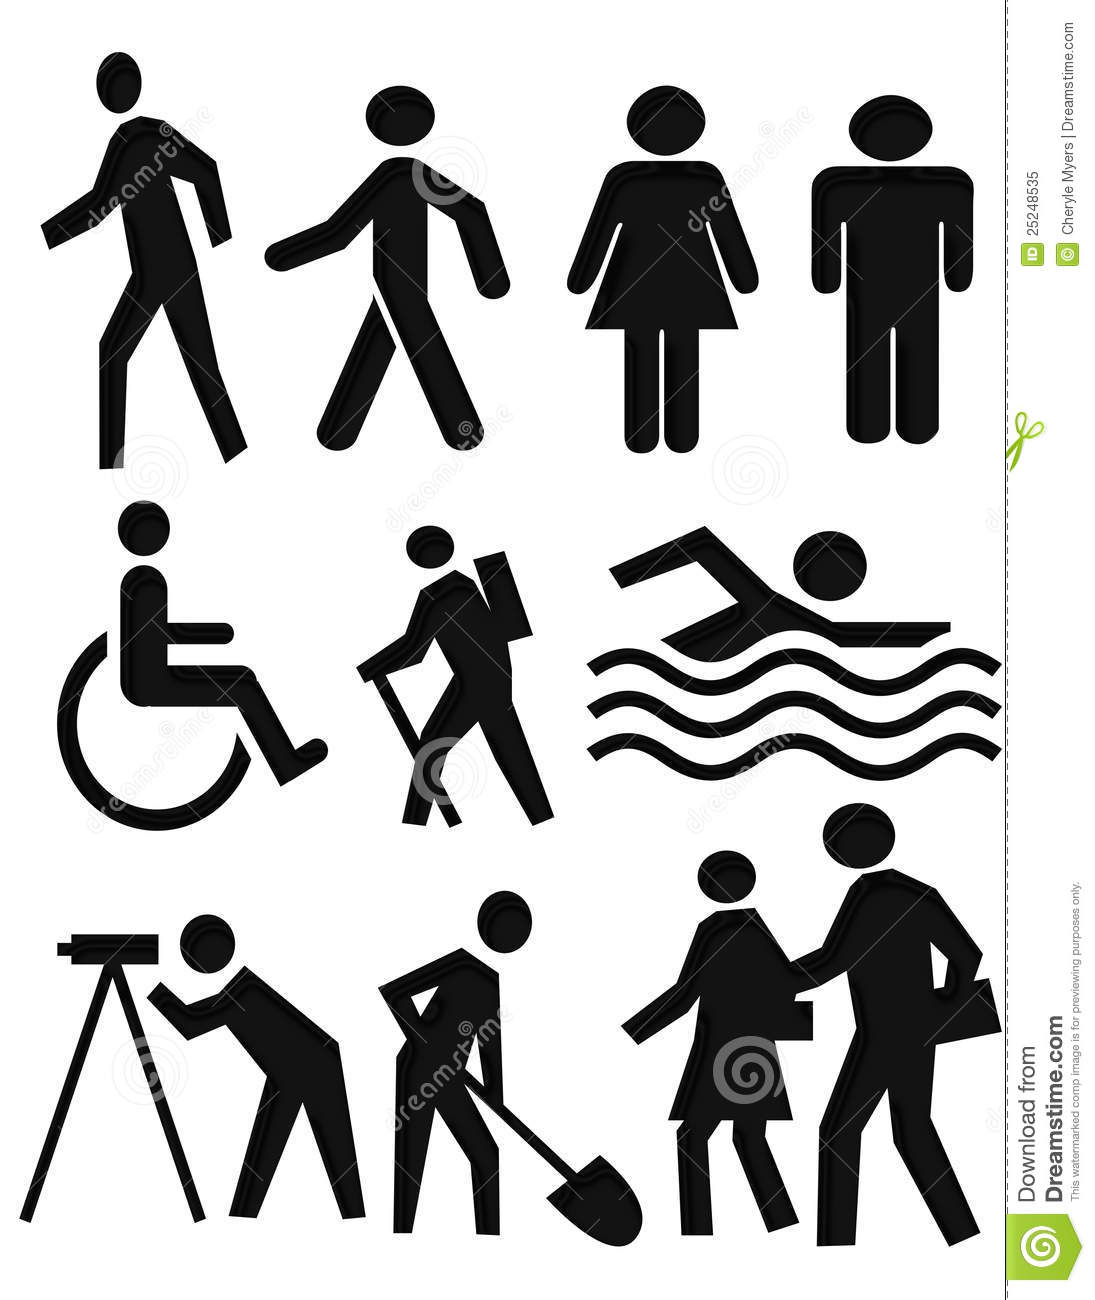 People Symbols Royalty Free Stock Photo Image 25248535